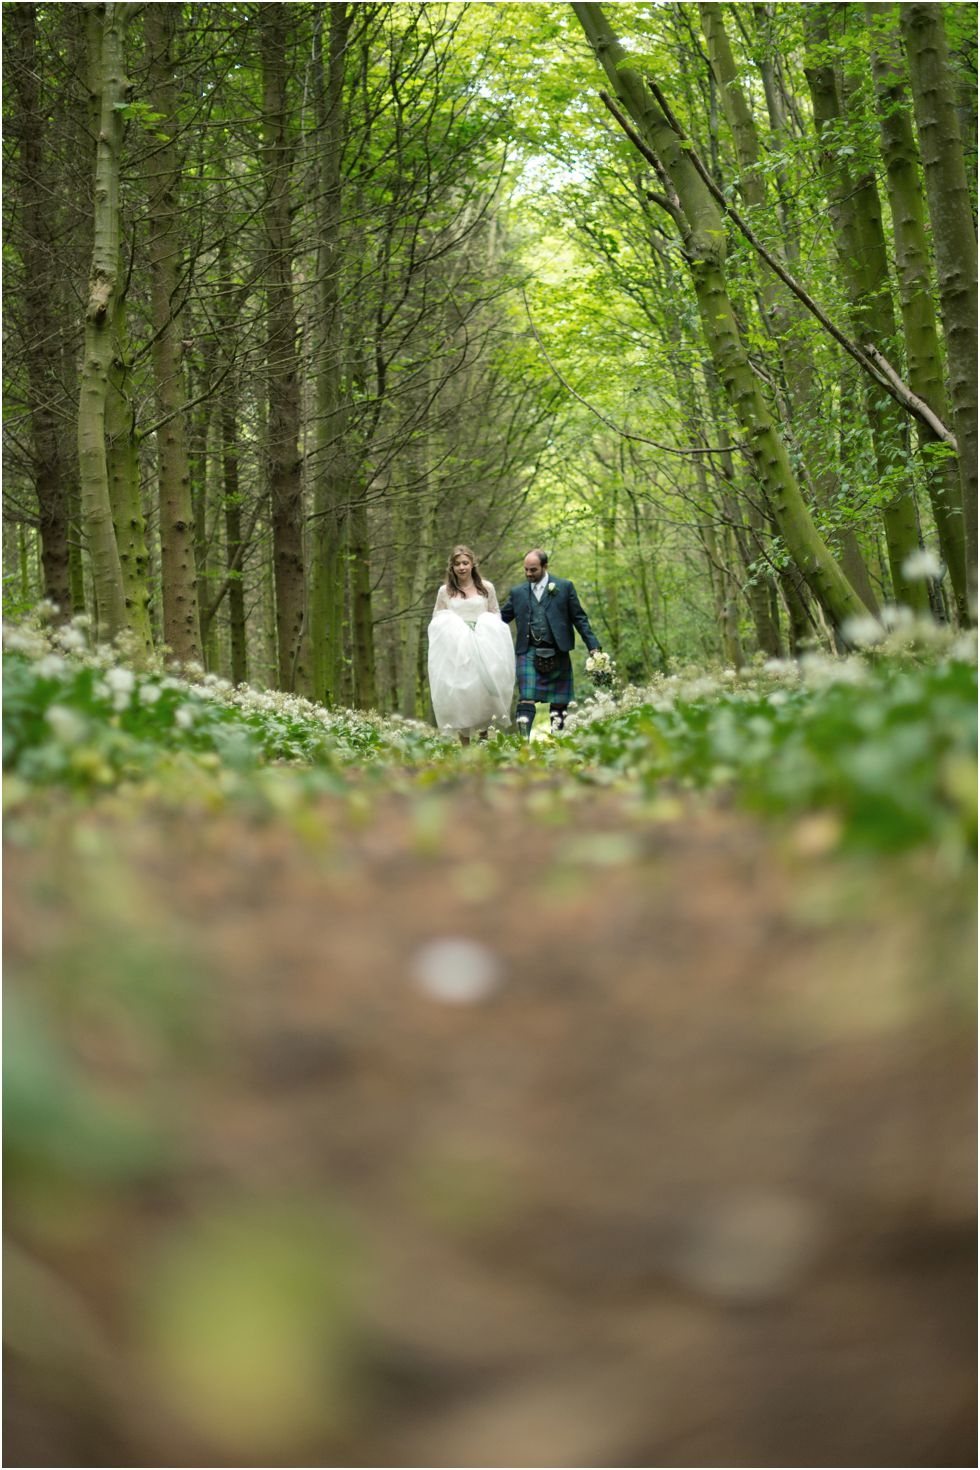 Broxmouth-Park-wedding-photography-35.jpg